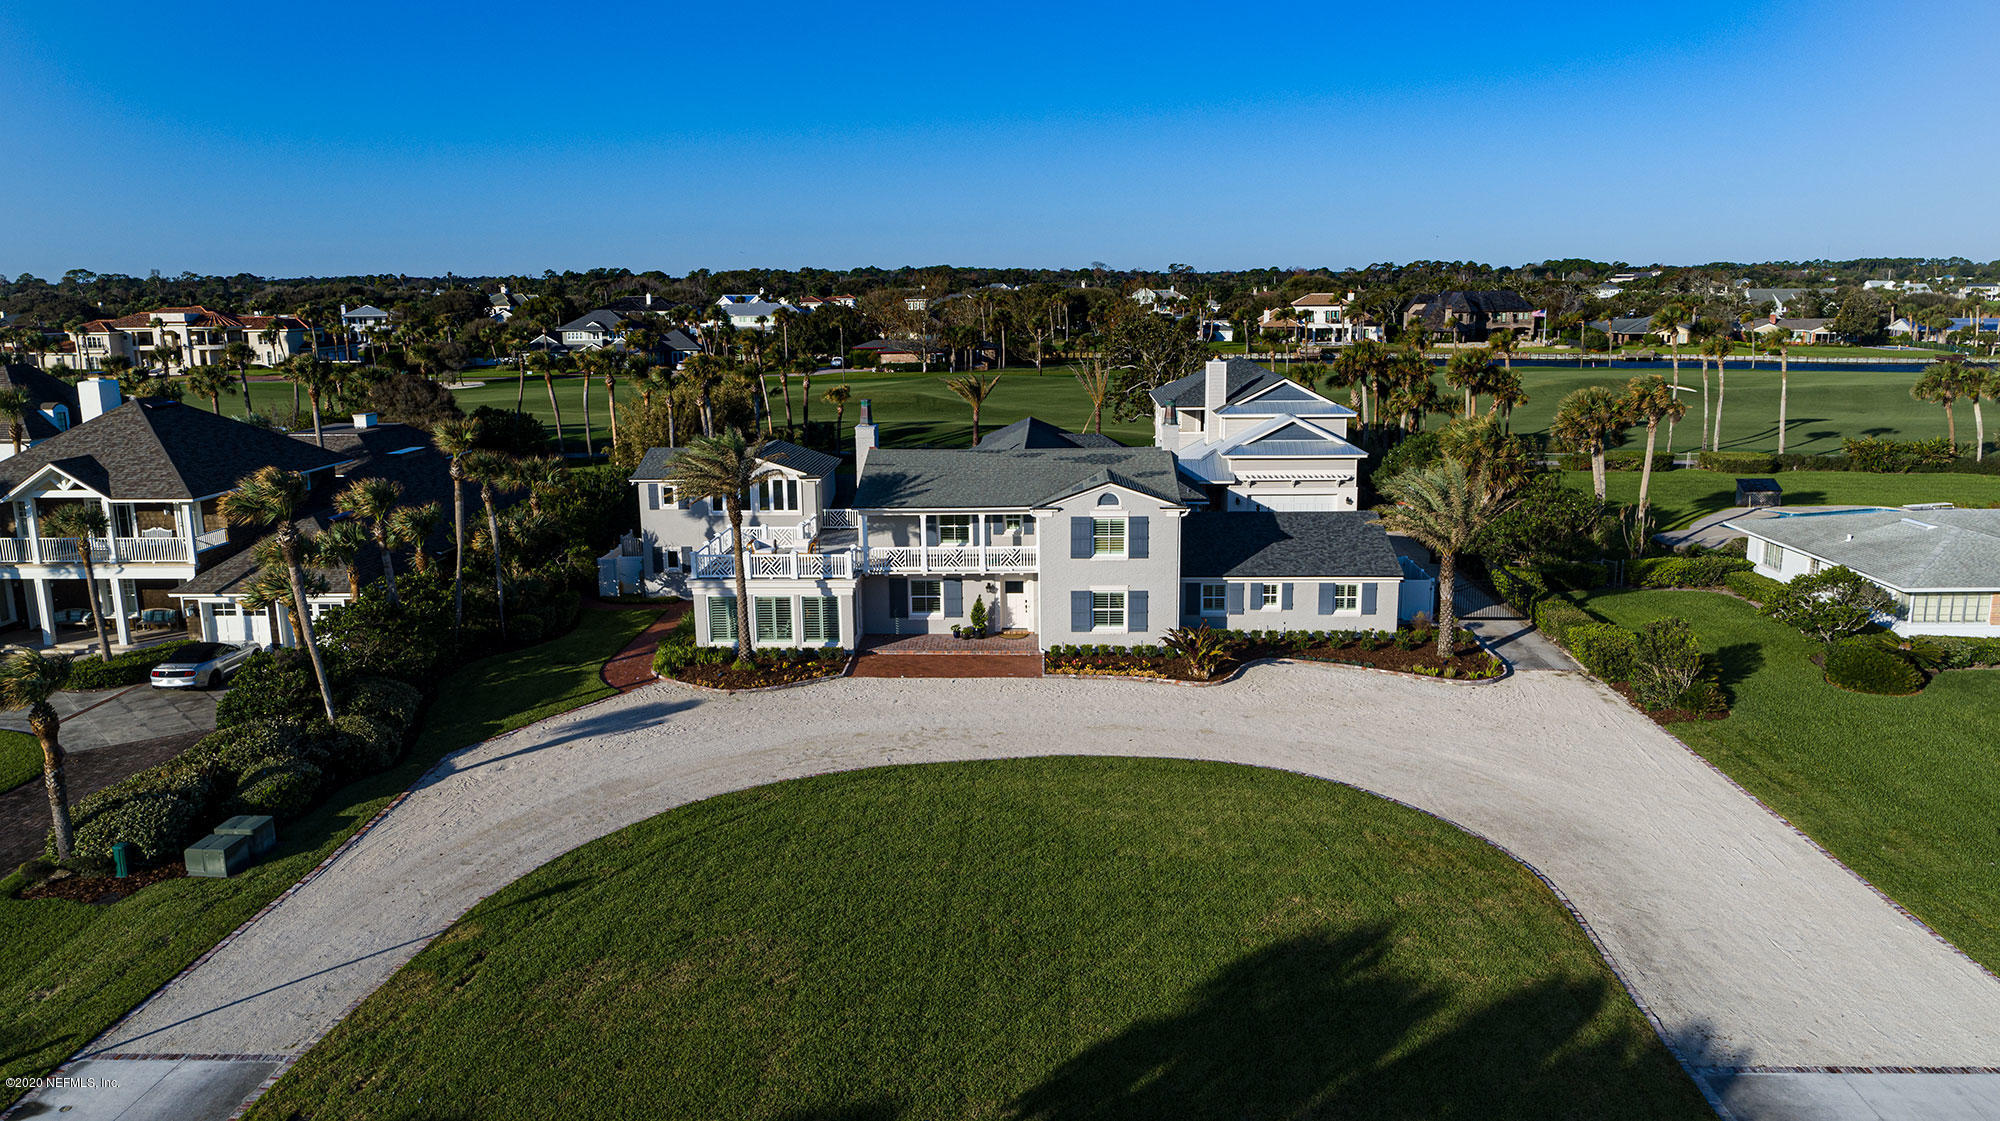 340 PONTE VEDRA, PONTE VEDRA BEACH, FLORIDA 32082, 7 Bedrooms Bedrooms, ,7 BathroomsBathrooms,Residential,For sale,PONTE VEDRA,1082807